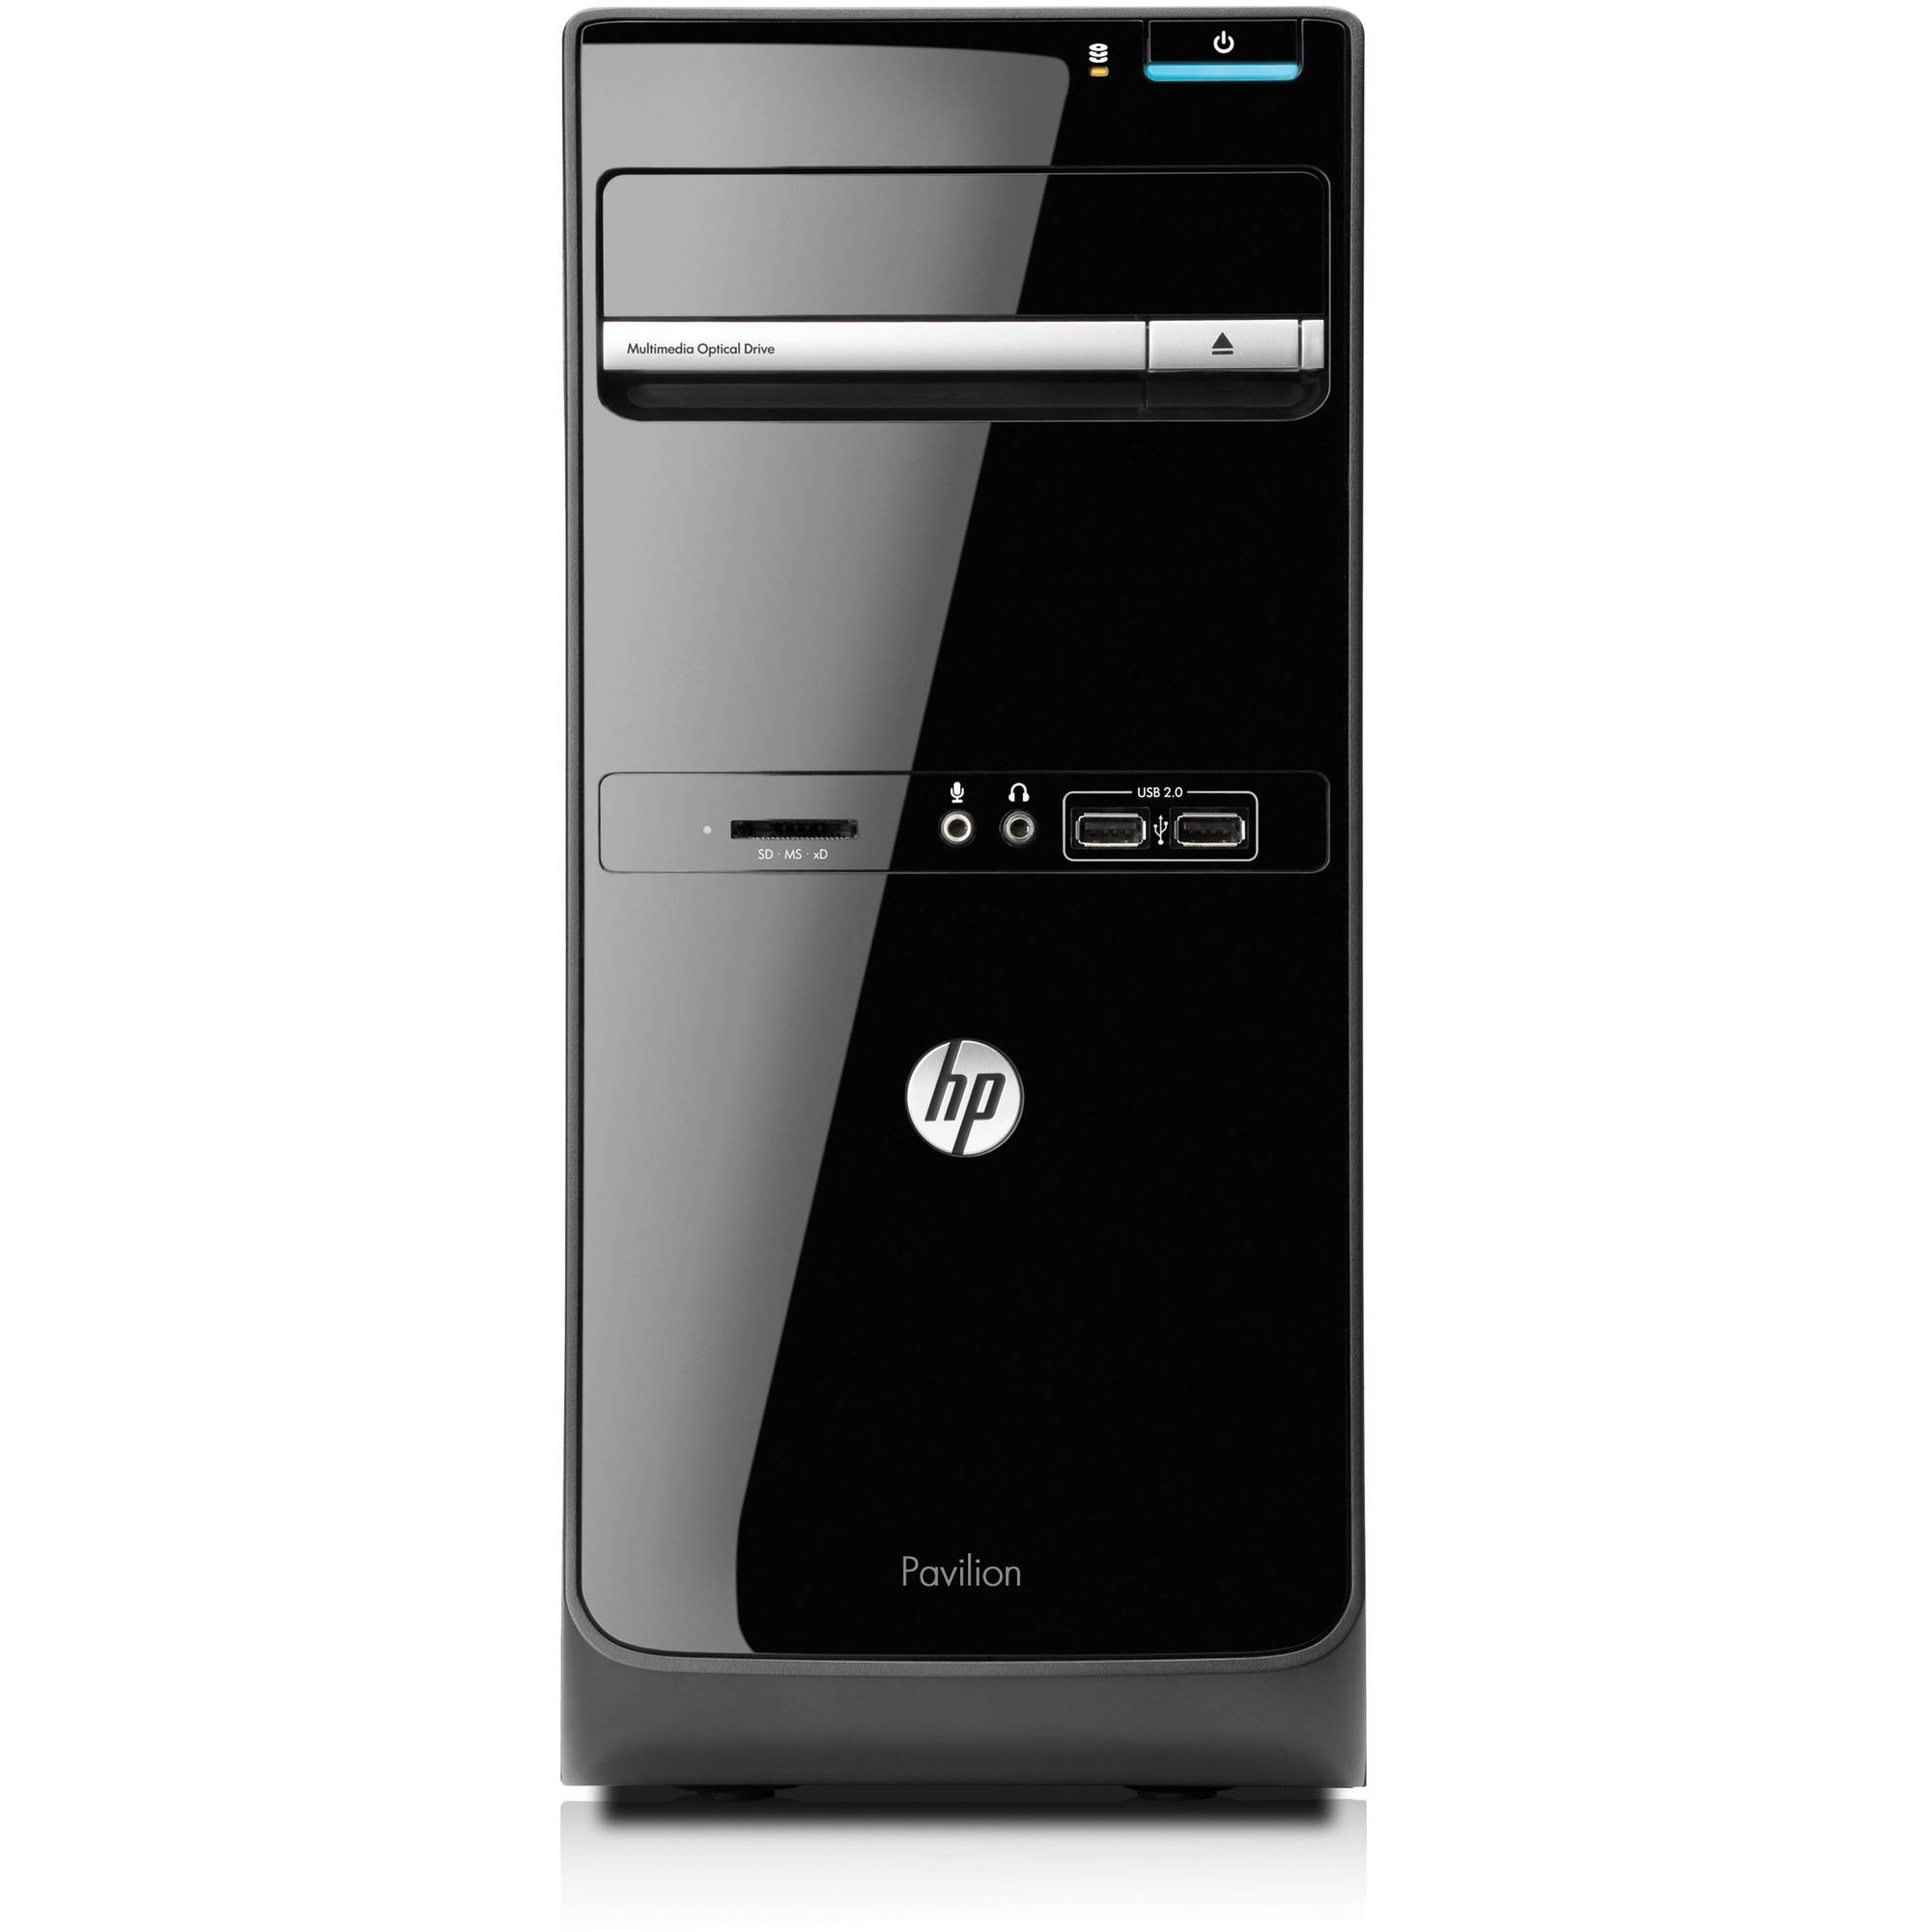 HP Refurbished Pavilion p6 - 2143W Desktop PC with AMD Quad - Core A6 - 3650 Accelerated Processor, 8GB Memory, 1TB Hard Drive and Windows 7 Home Premium (Monitor Not Included)